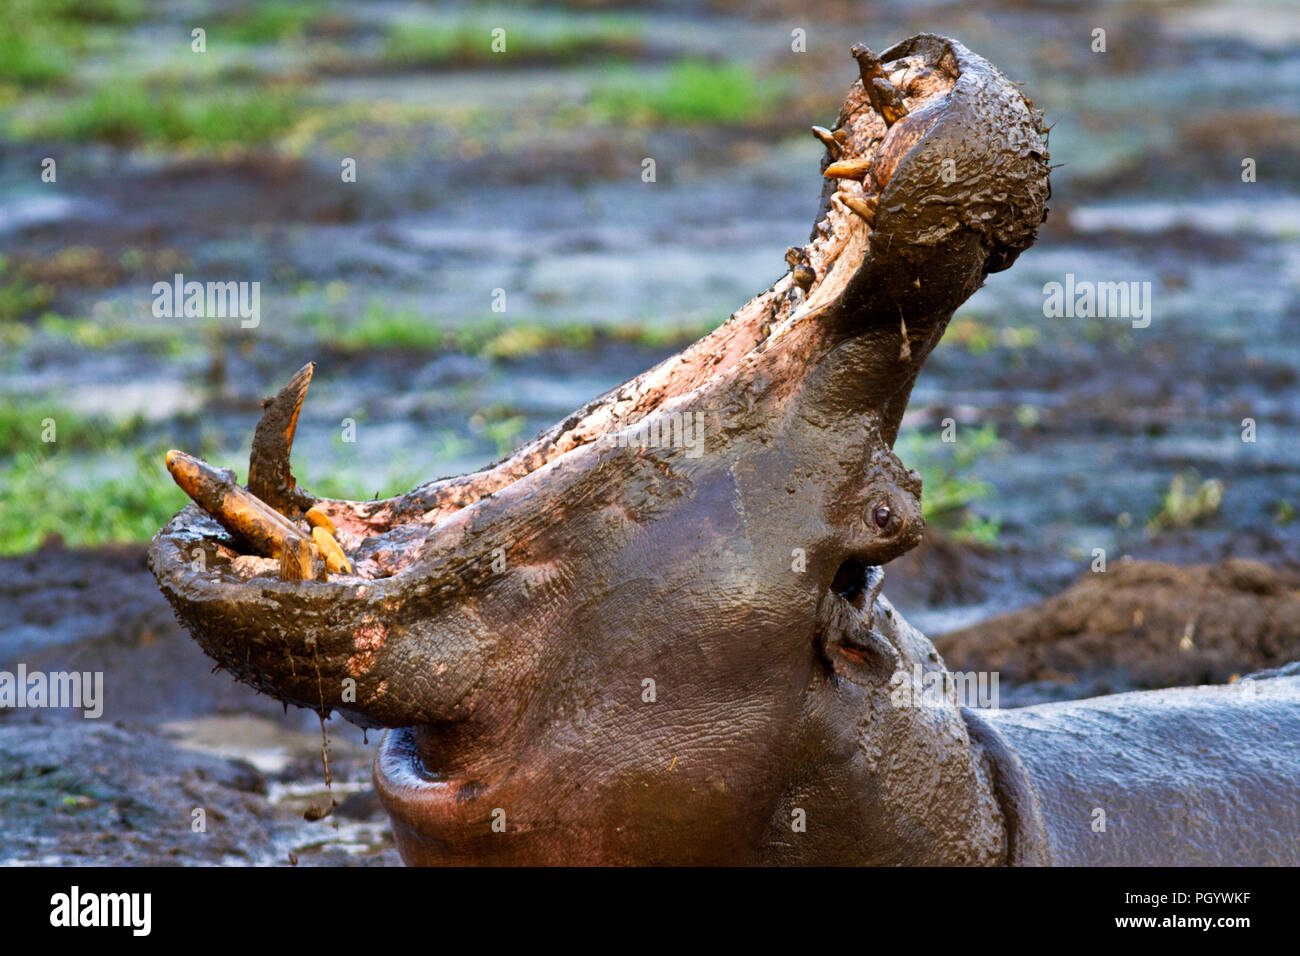 A hippo bull makes an exaggerated yawning gesture which is a clear threat display to make other rival males aware of his presence and readiness to def - Stock Image